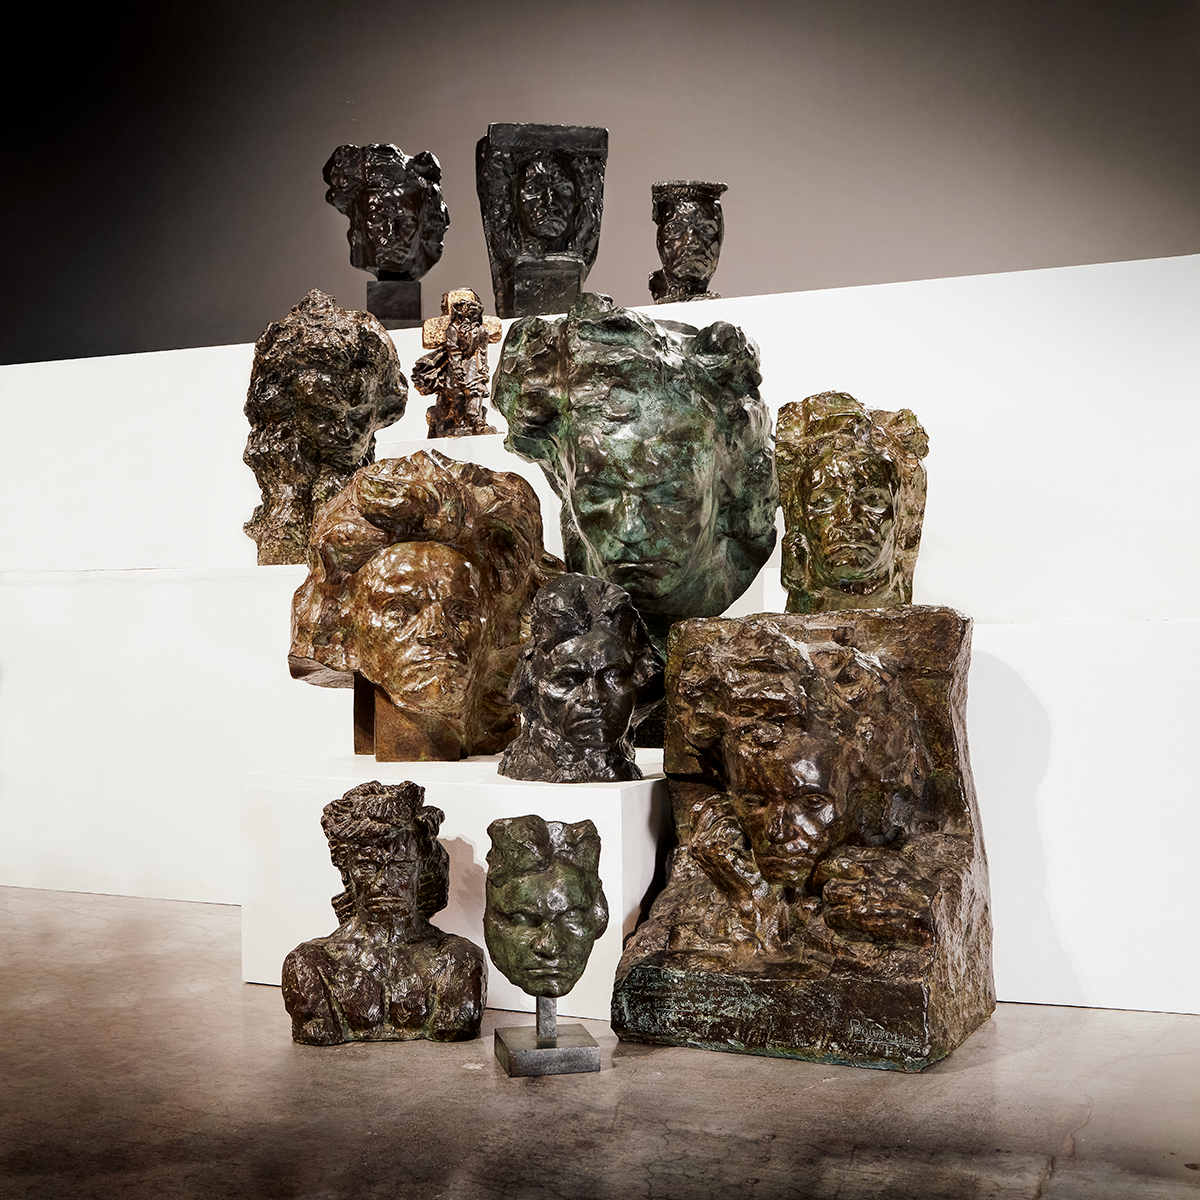 Variations on a Theme: 12 Bronzes of Ludwig van Beethoven by Antoine Bourdelle